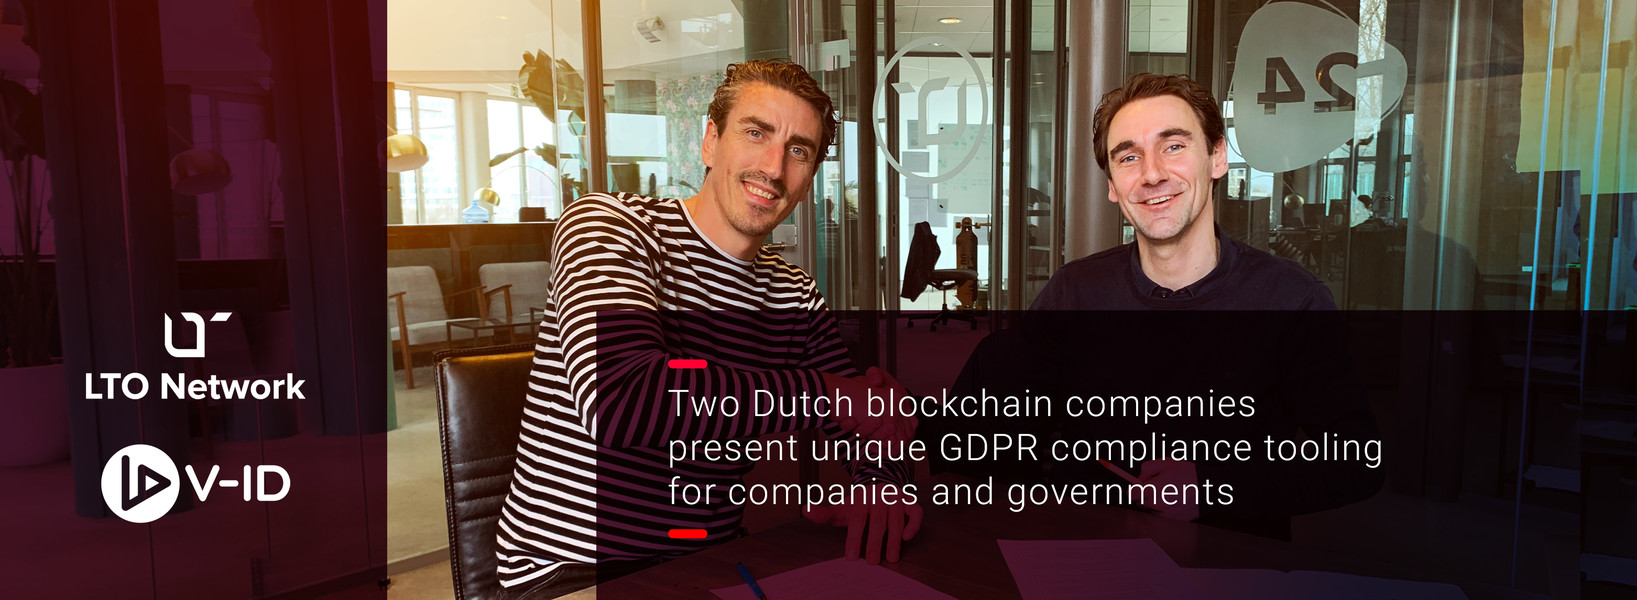 Two upcoming blockchain companies present unique GDPR-compliant tooling for companies and governments